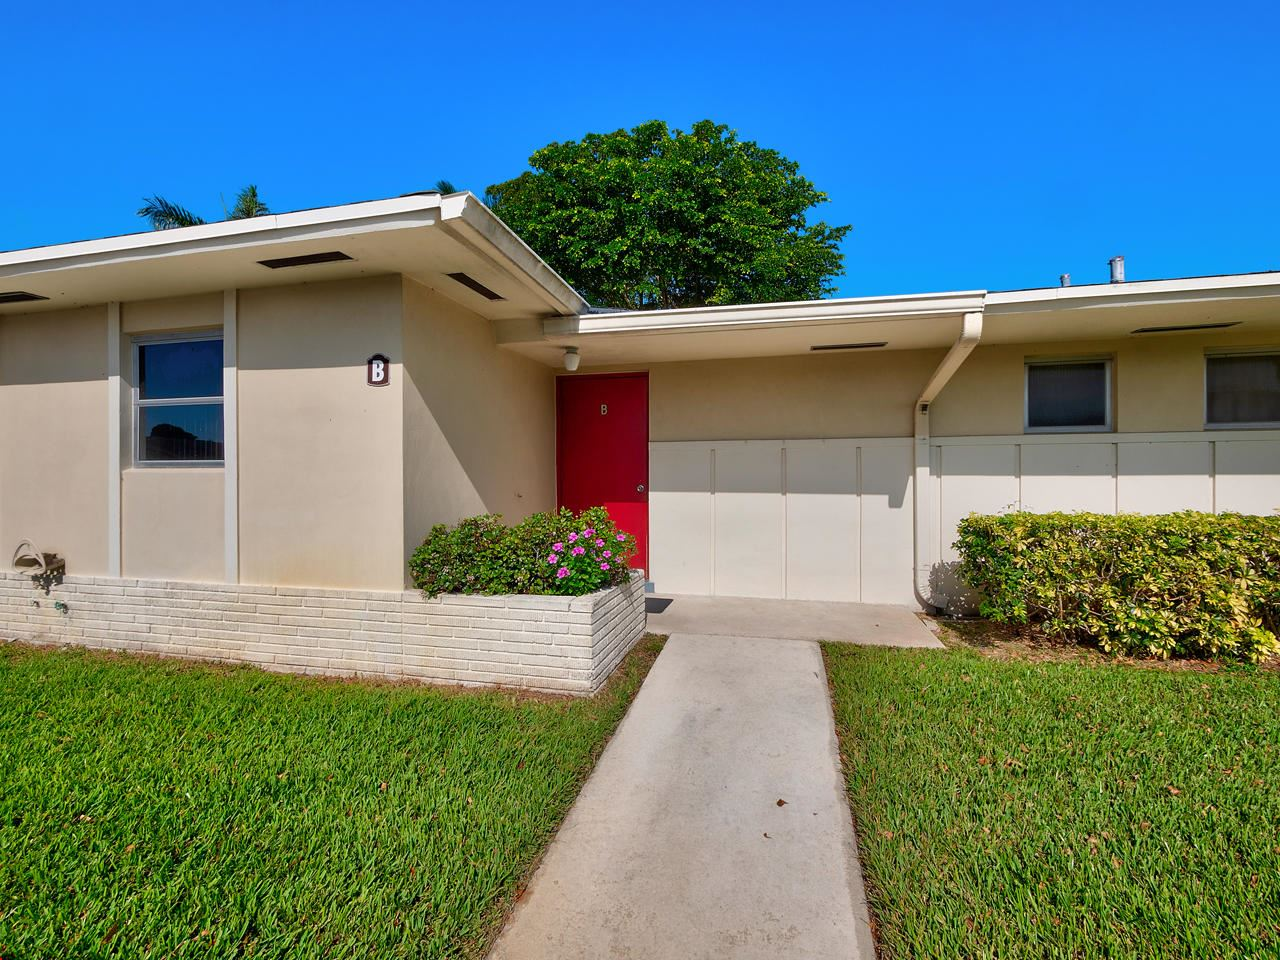 2826 Ashley Drive E #B, West Palm Beach, FL 33415 - #: RX-10635535